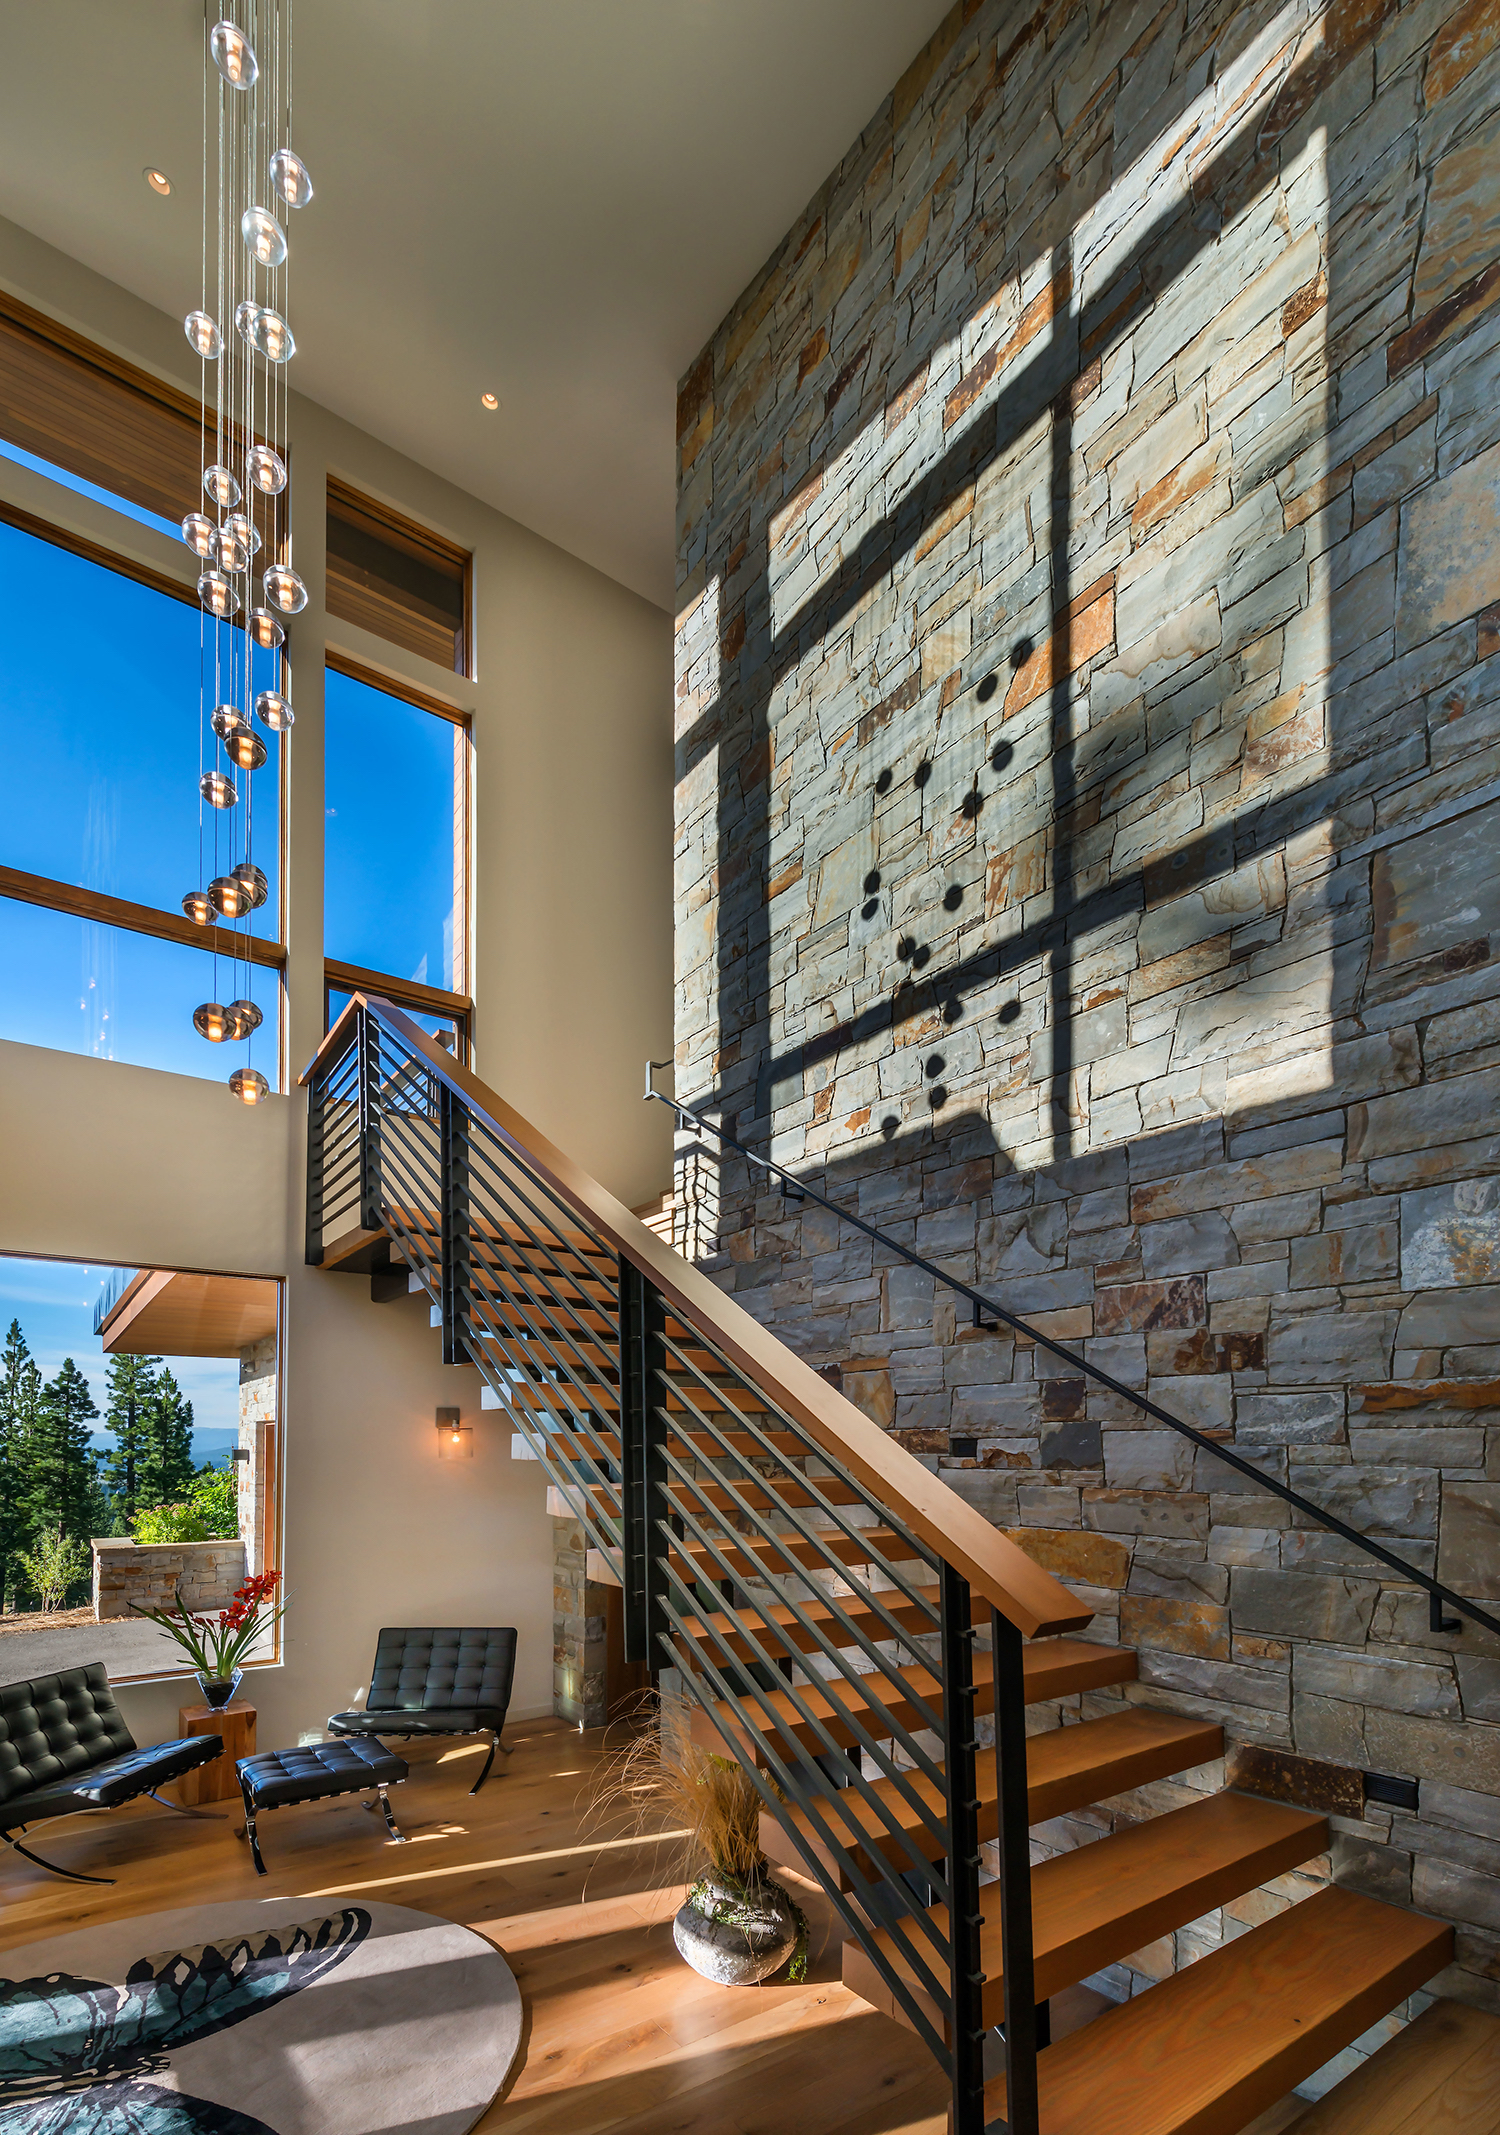 Lot 595_Stairwell_Int Masonry_Windows_Chandelier.jpg